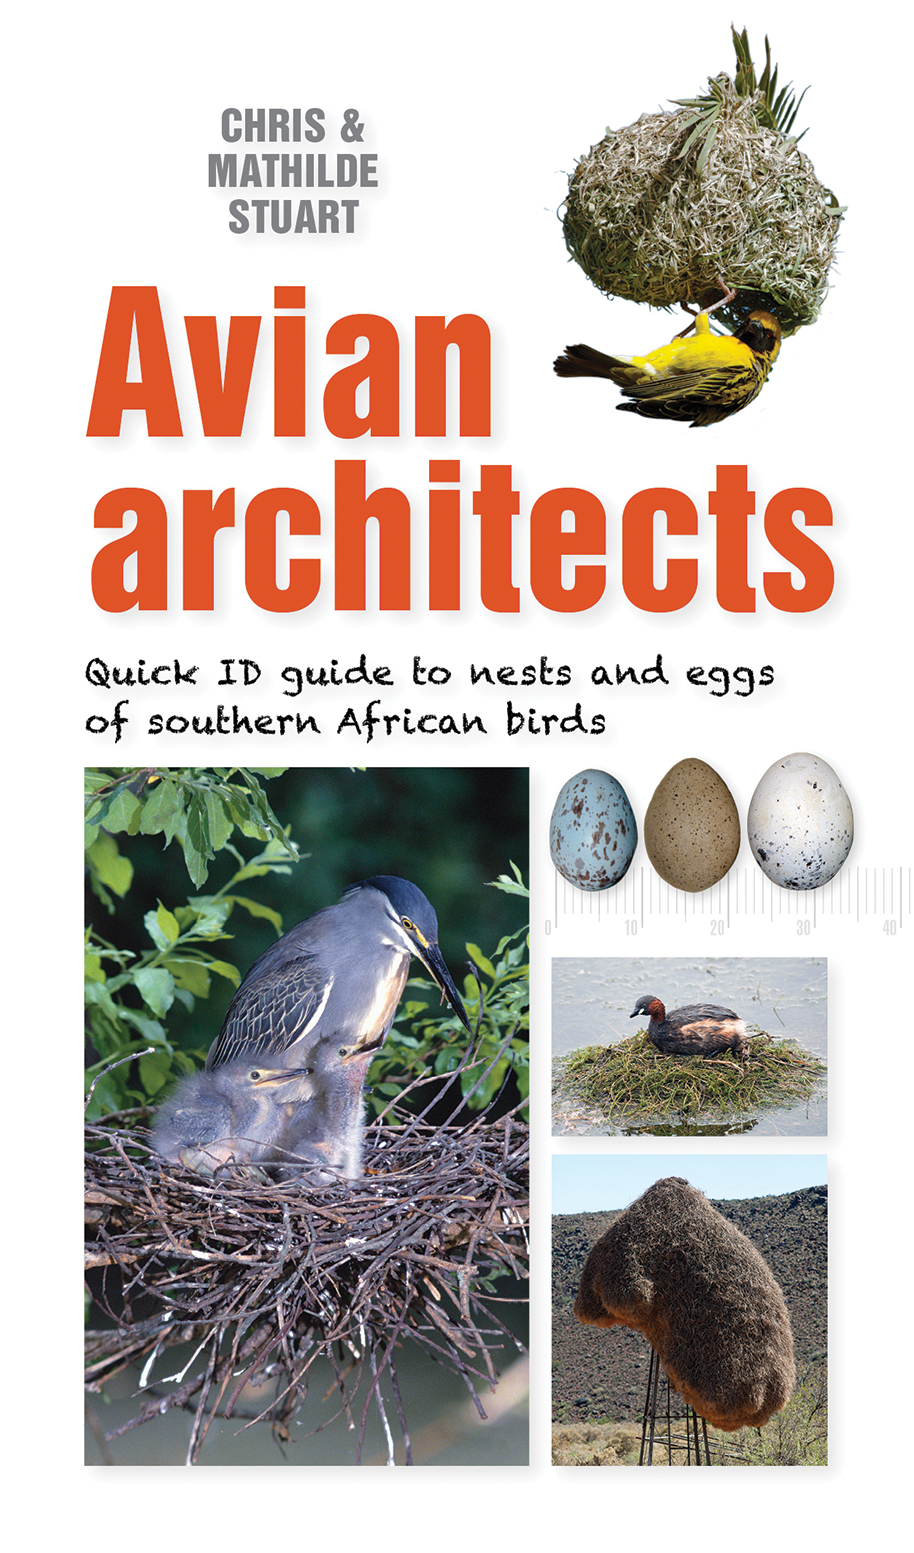 Avian Architects: Quick ID guide to nests and eggs of southern African birds